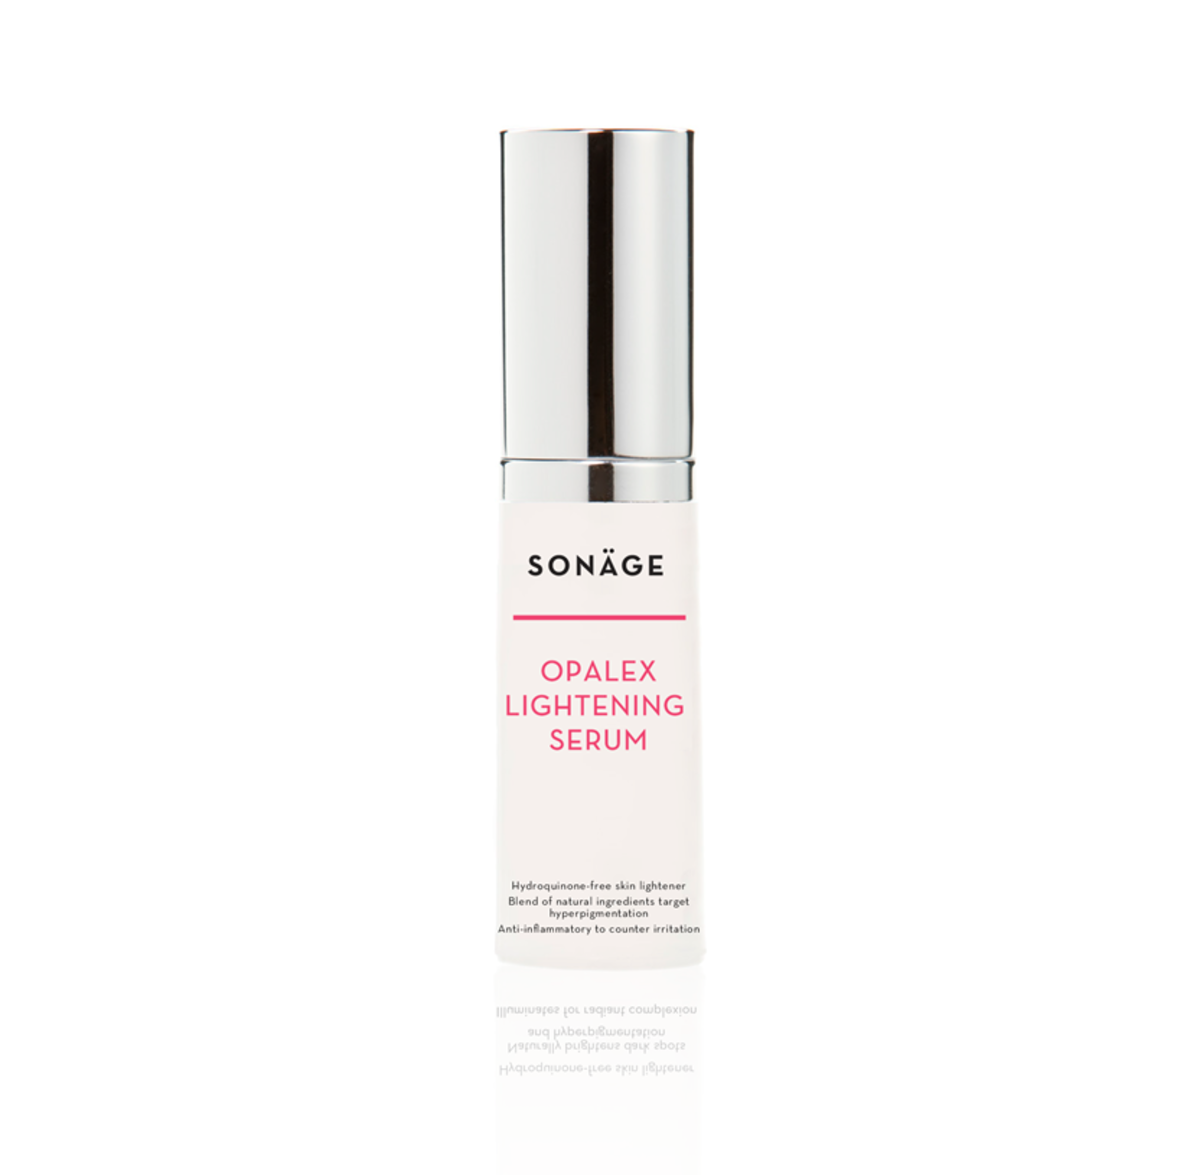 Sonage Opalex Serum